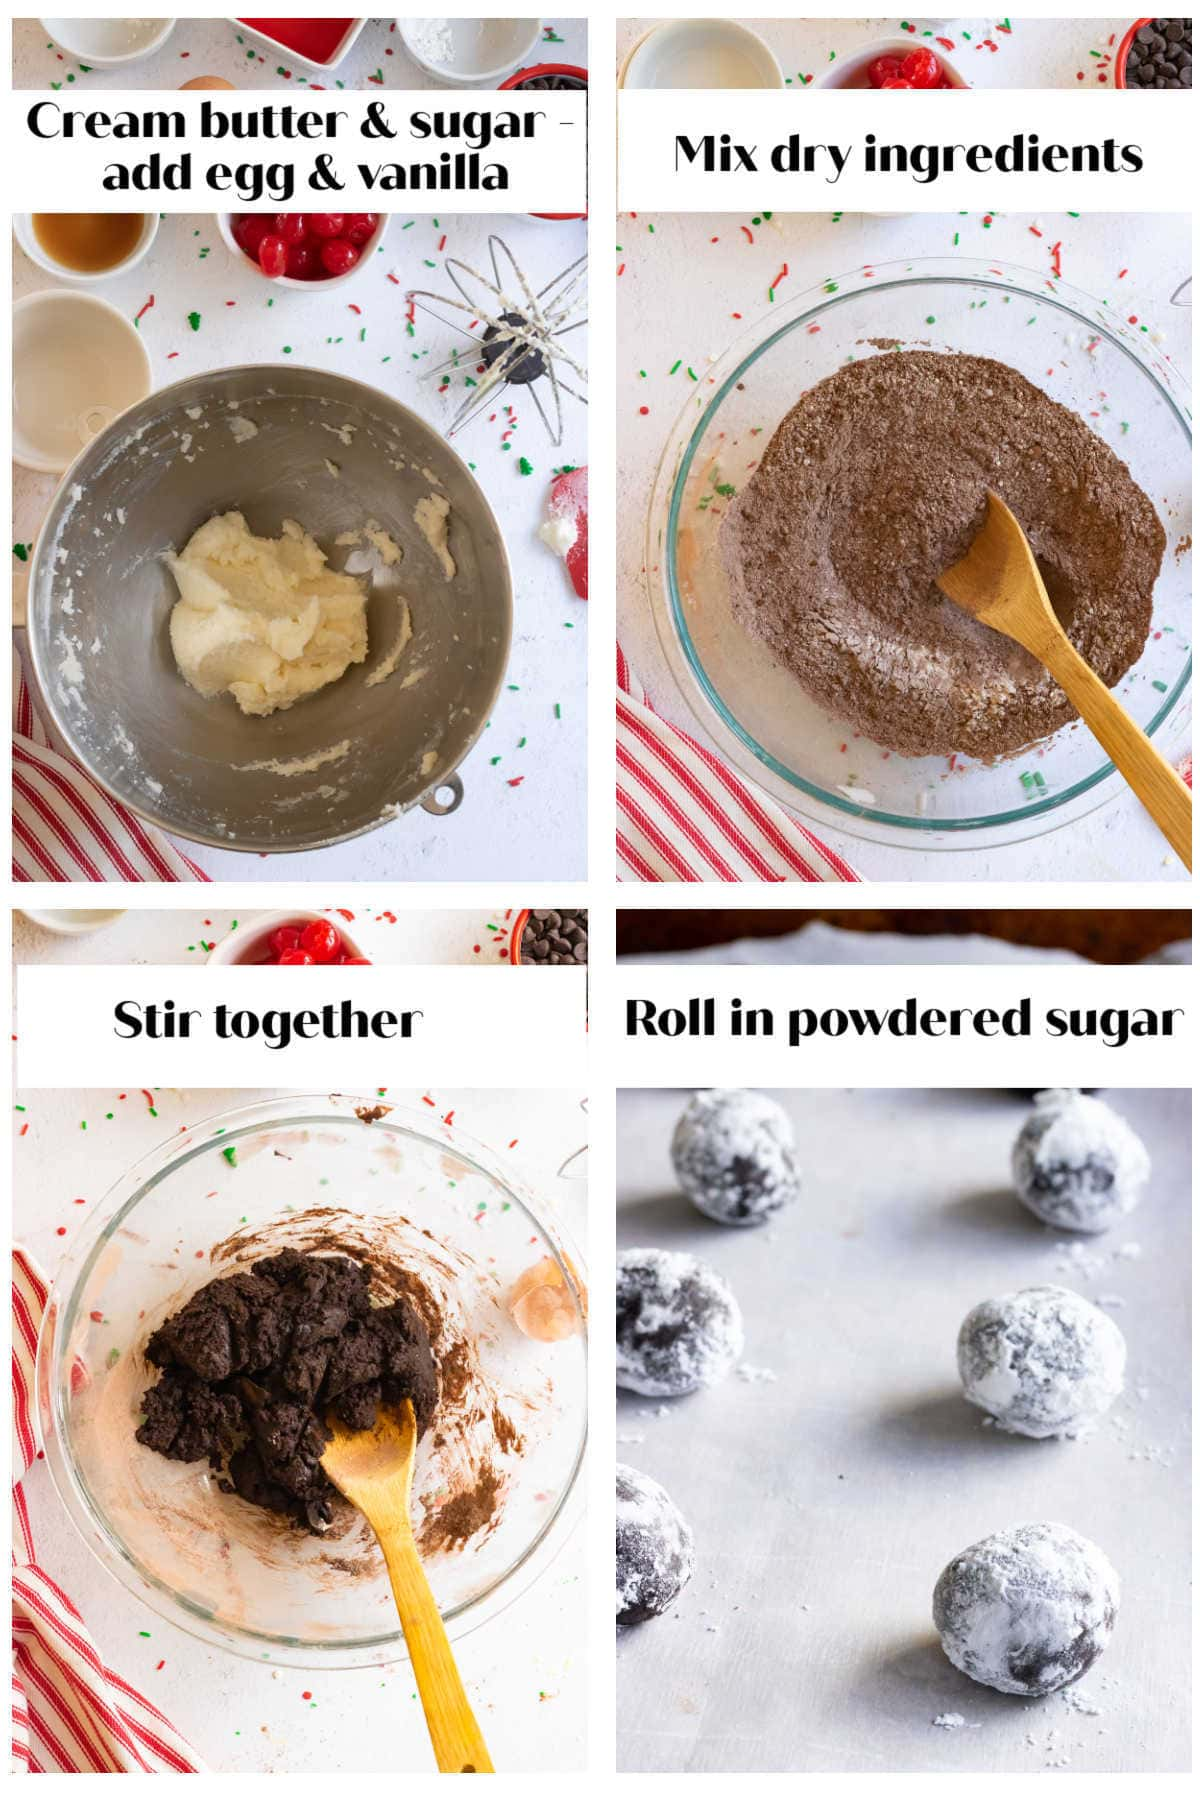 Step by step images for how to make the cookie dough.